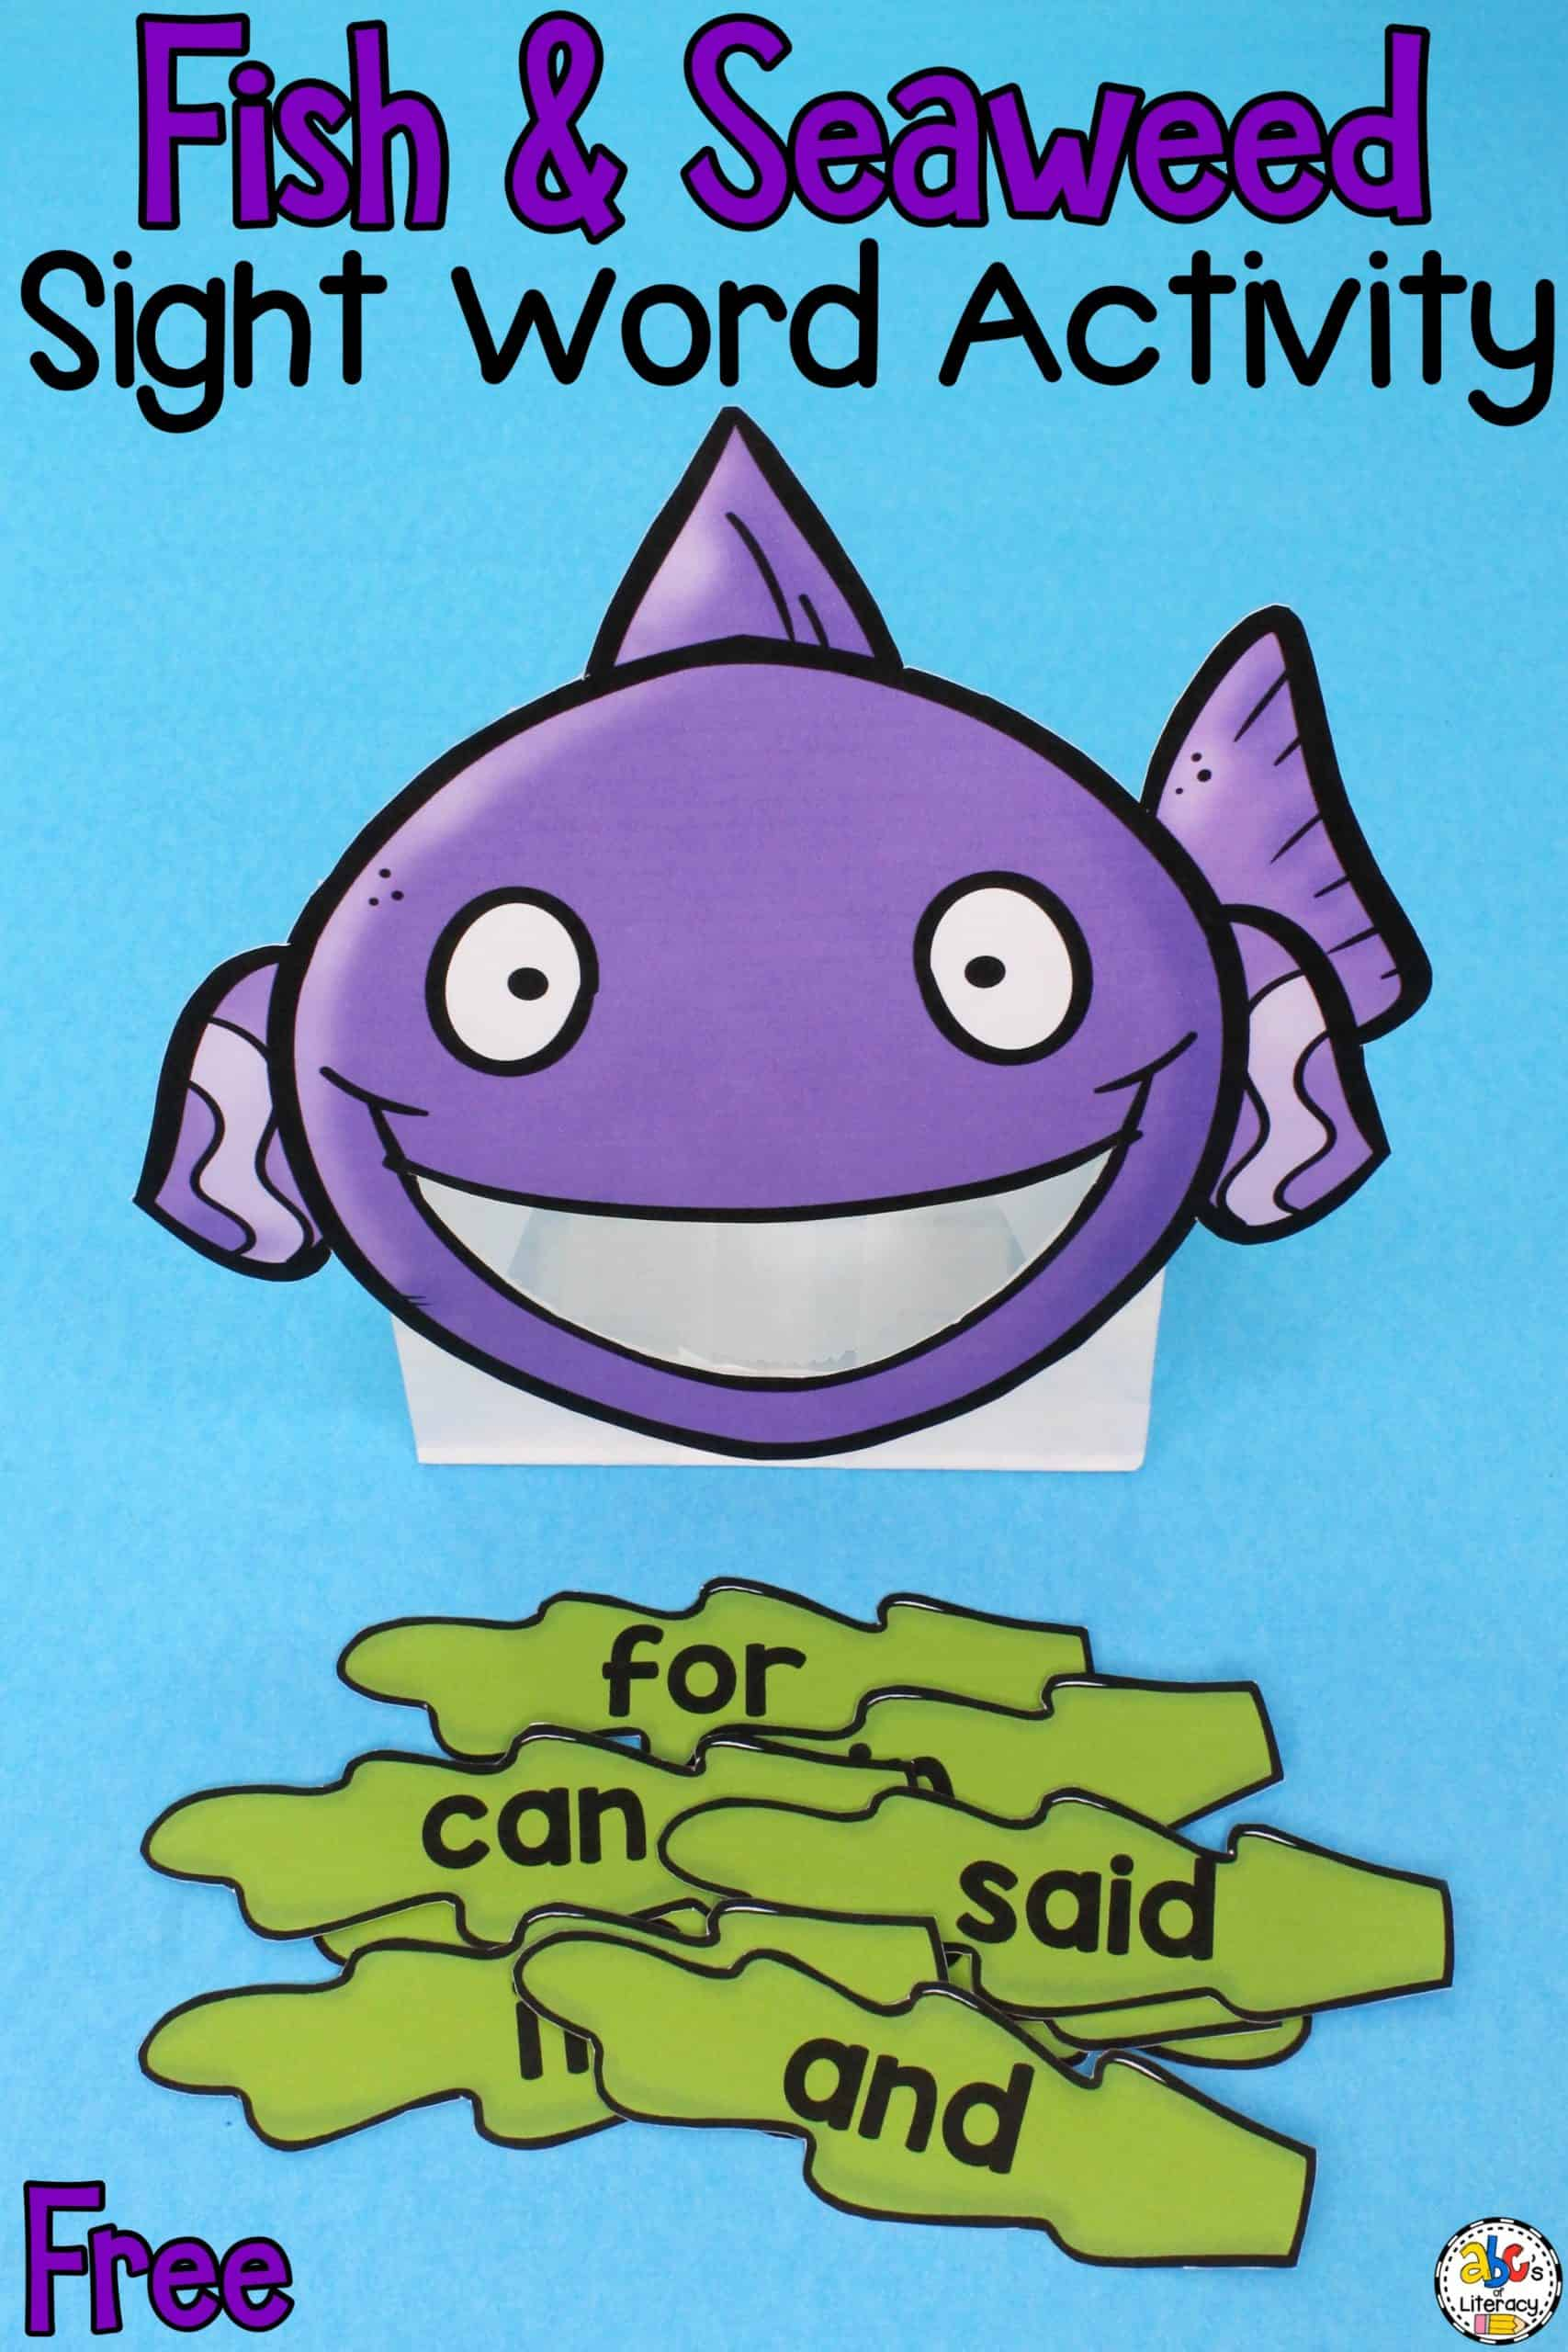 Fish & Seaweed Sight Word Activity